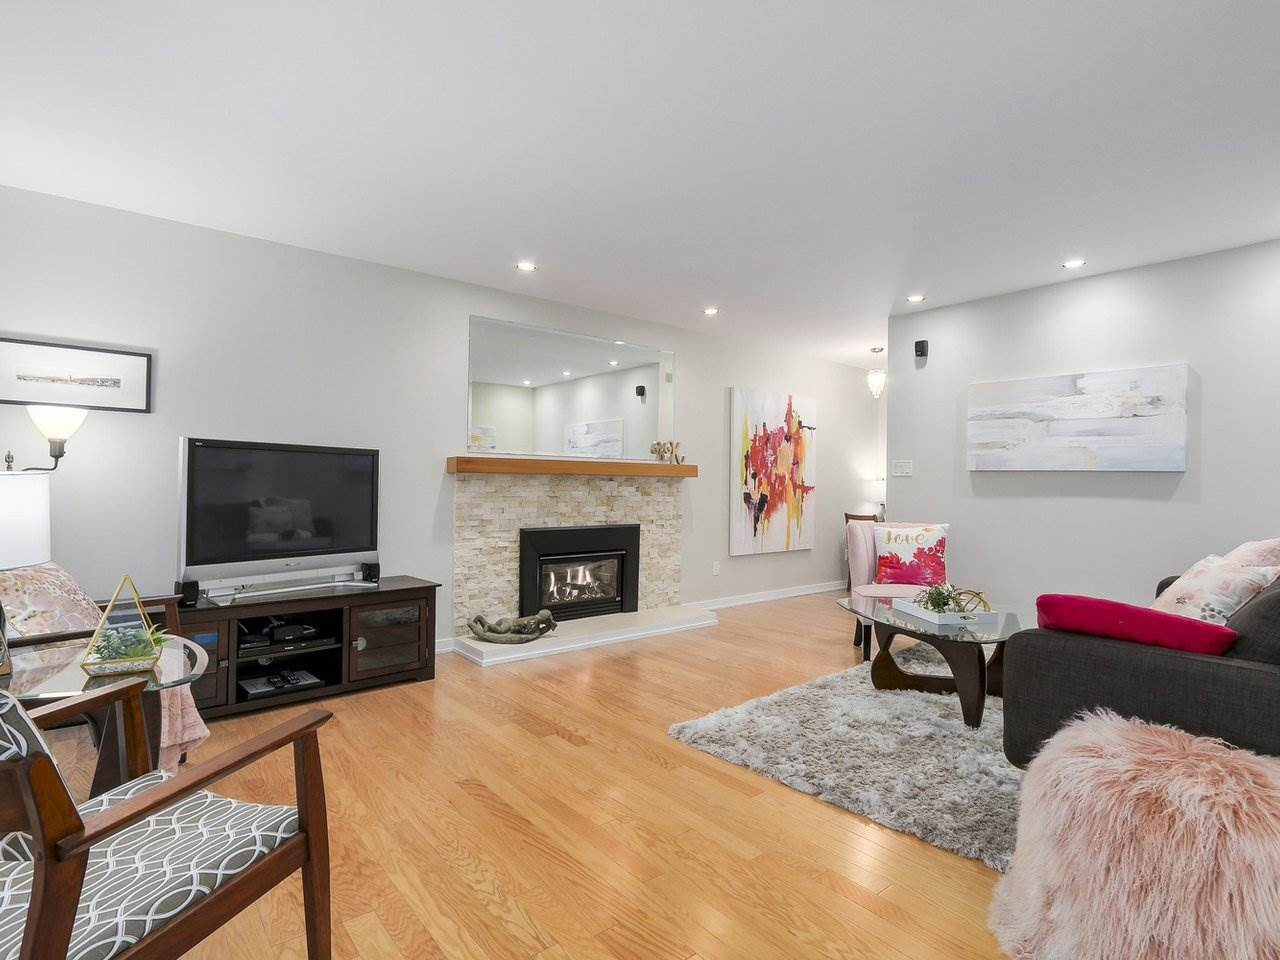 Living Room below is spacious and open with a new gas fireplace, hardwood floors